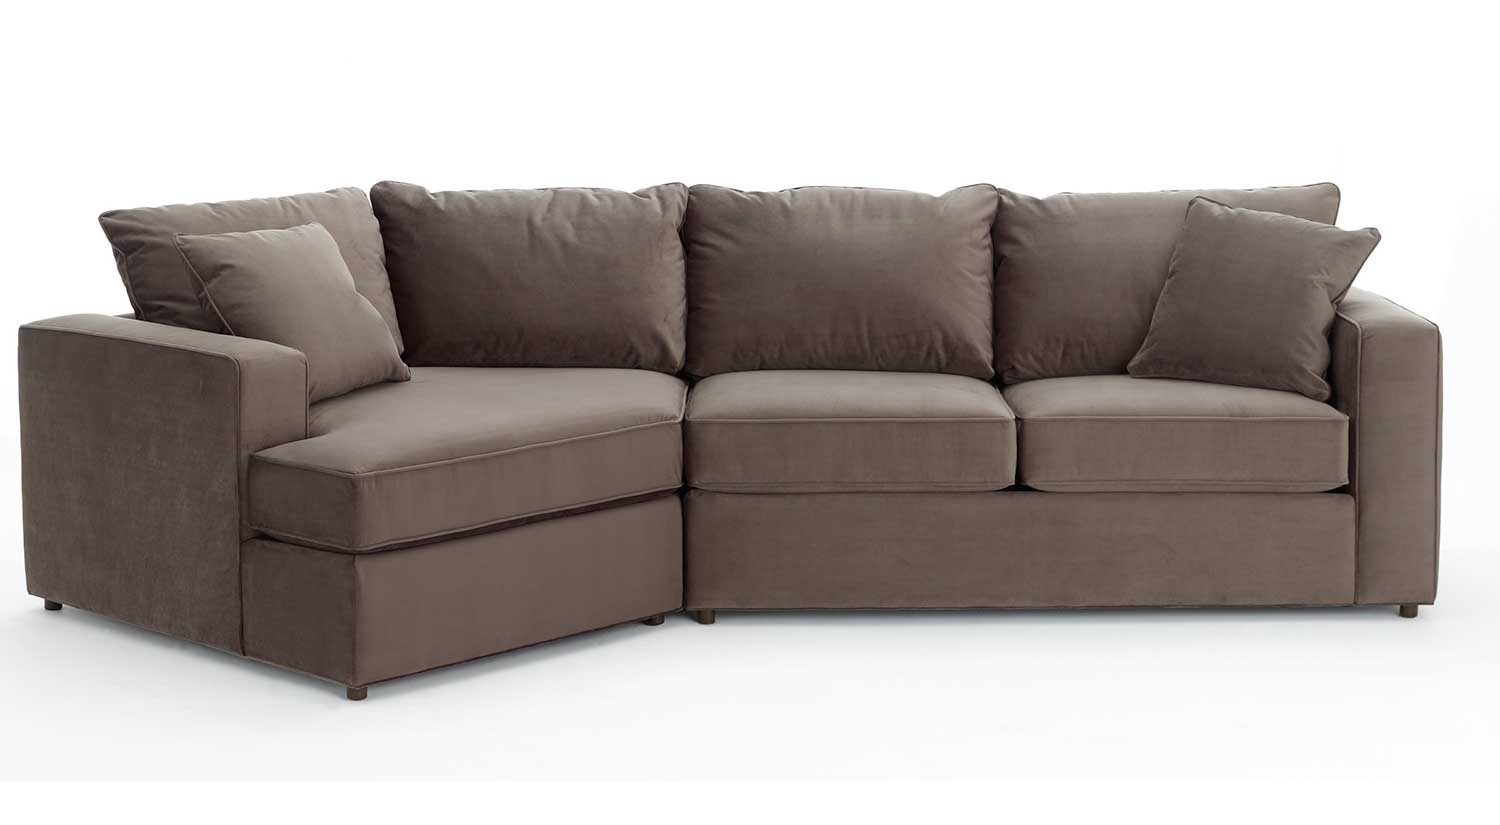 Milford Cuddle Chaise Sectional